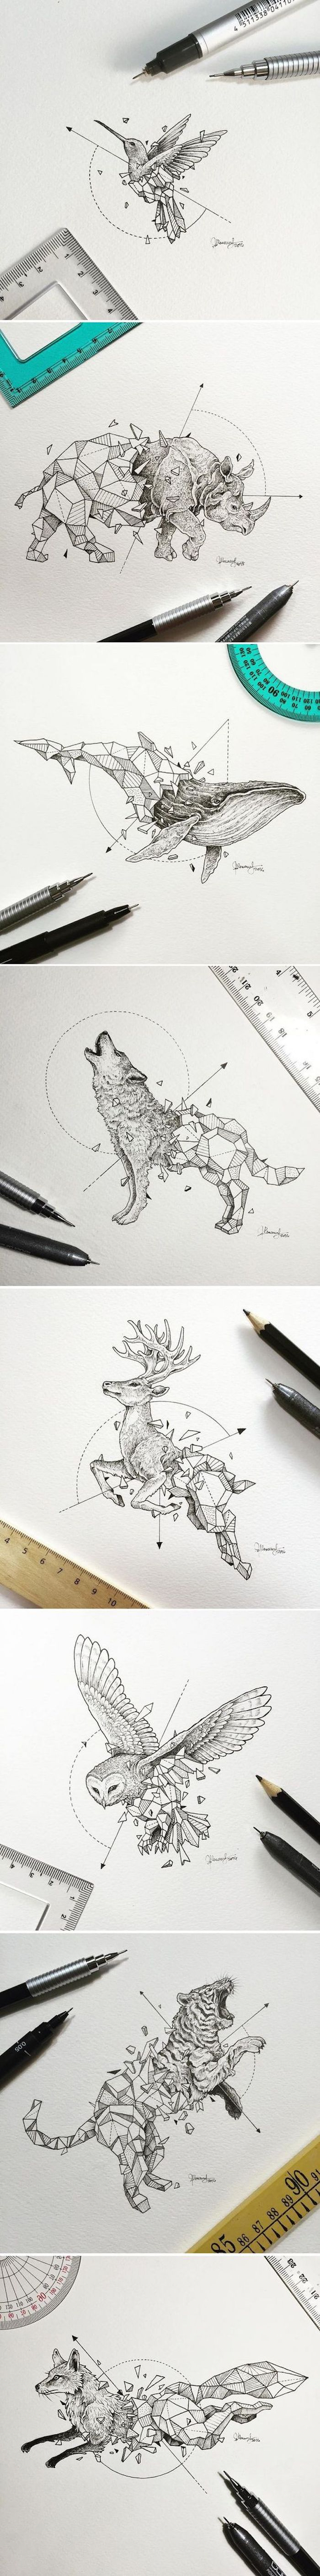 black and white animal drawings, white background, arm tattoos for men